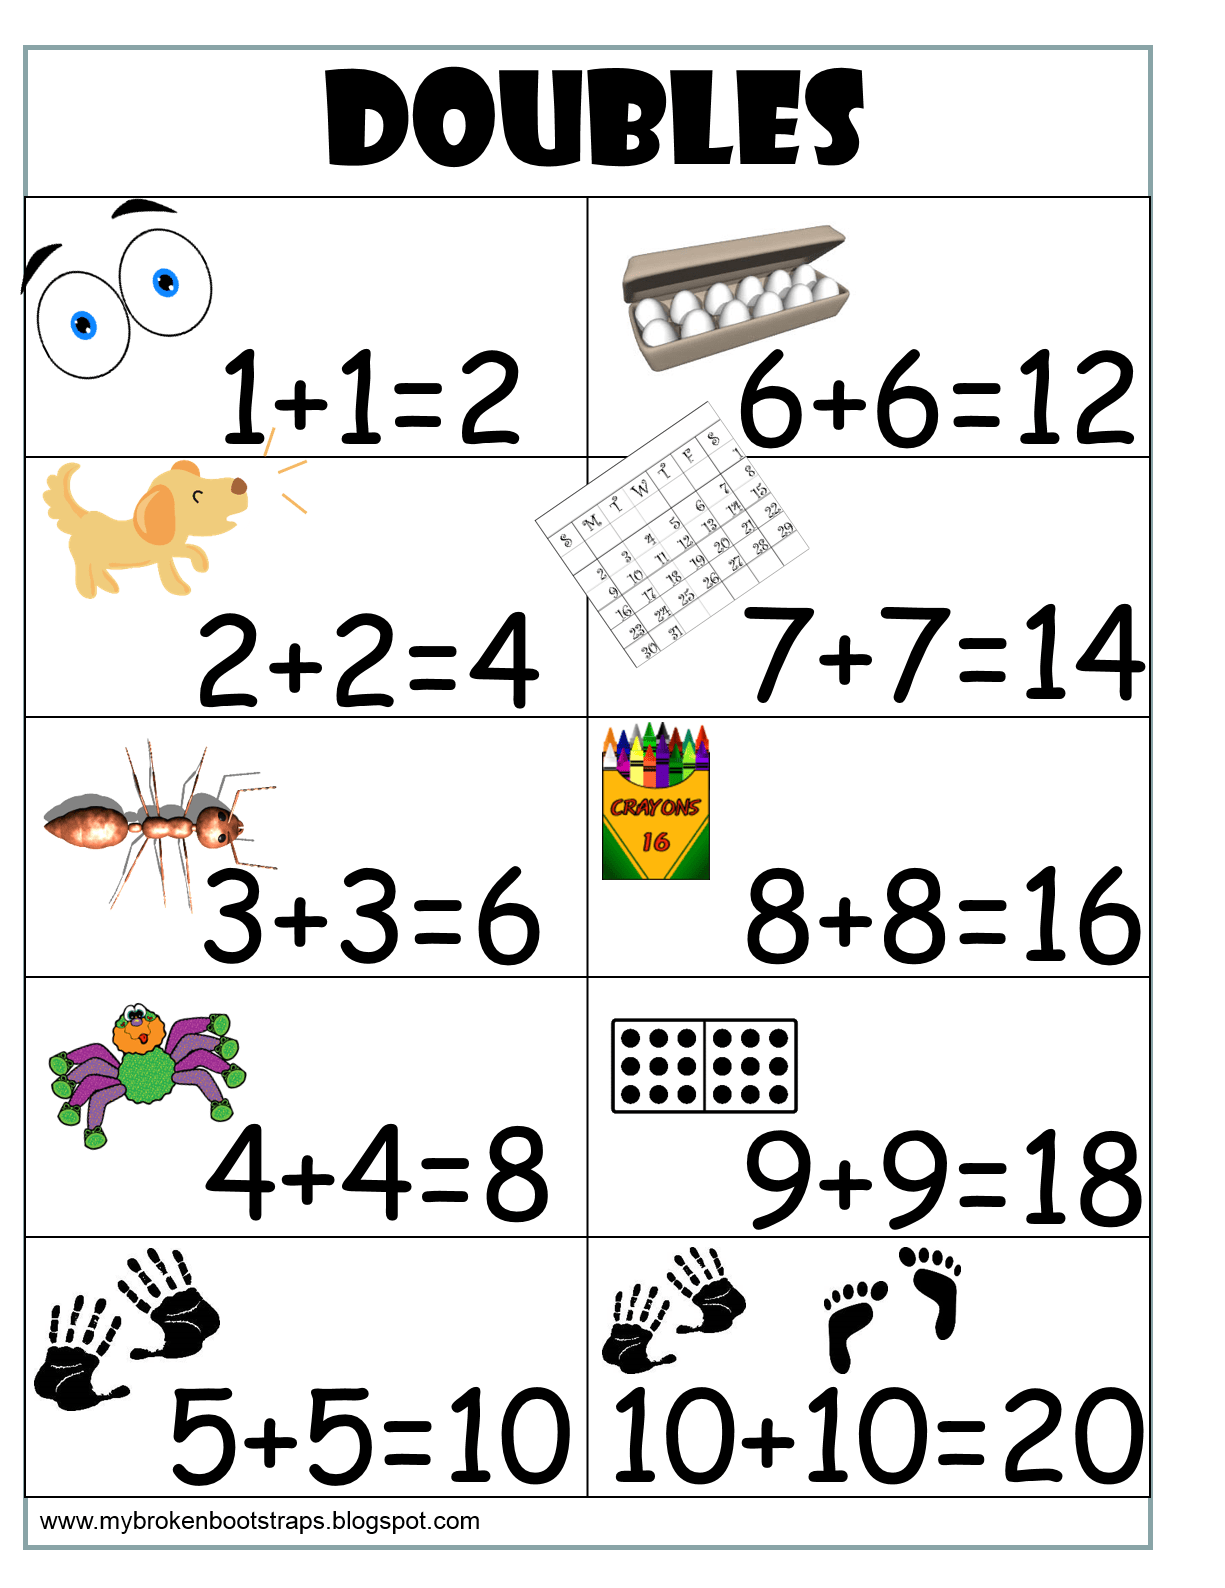 Free Doubles Anchor Chart I Print Them And Put Them In My Students Individual Folders For A